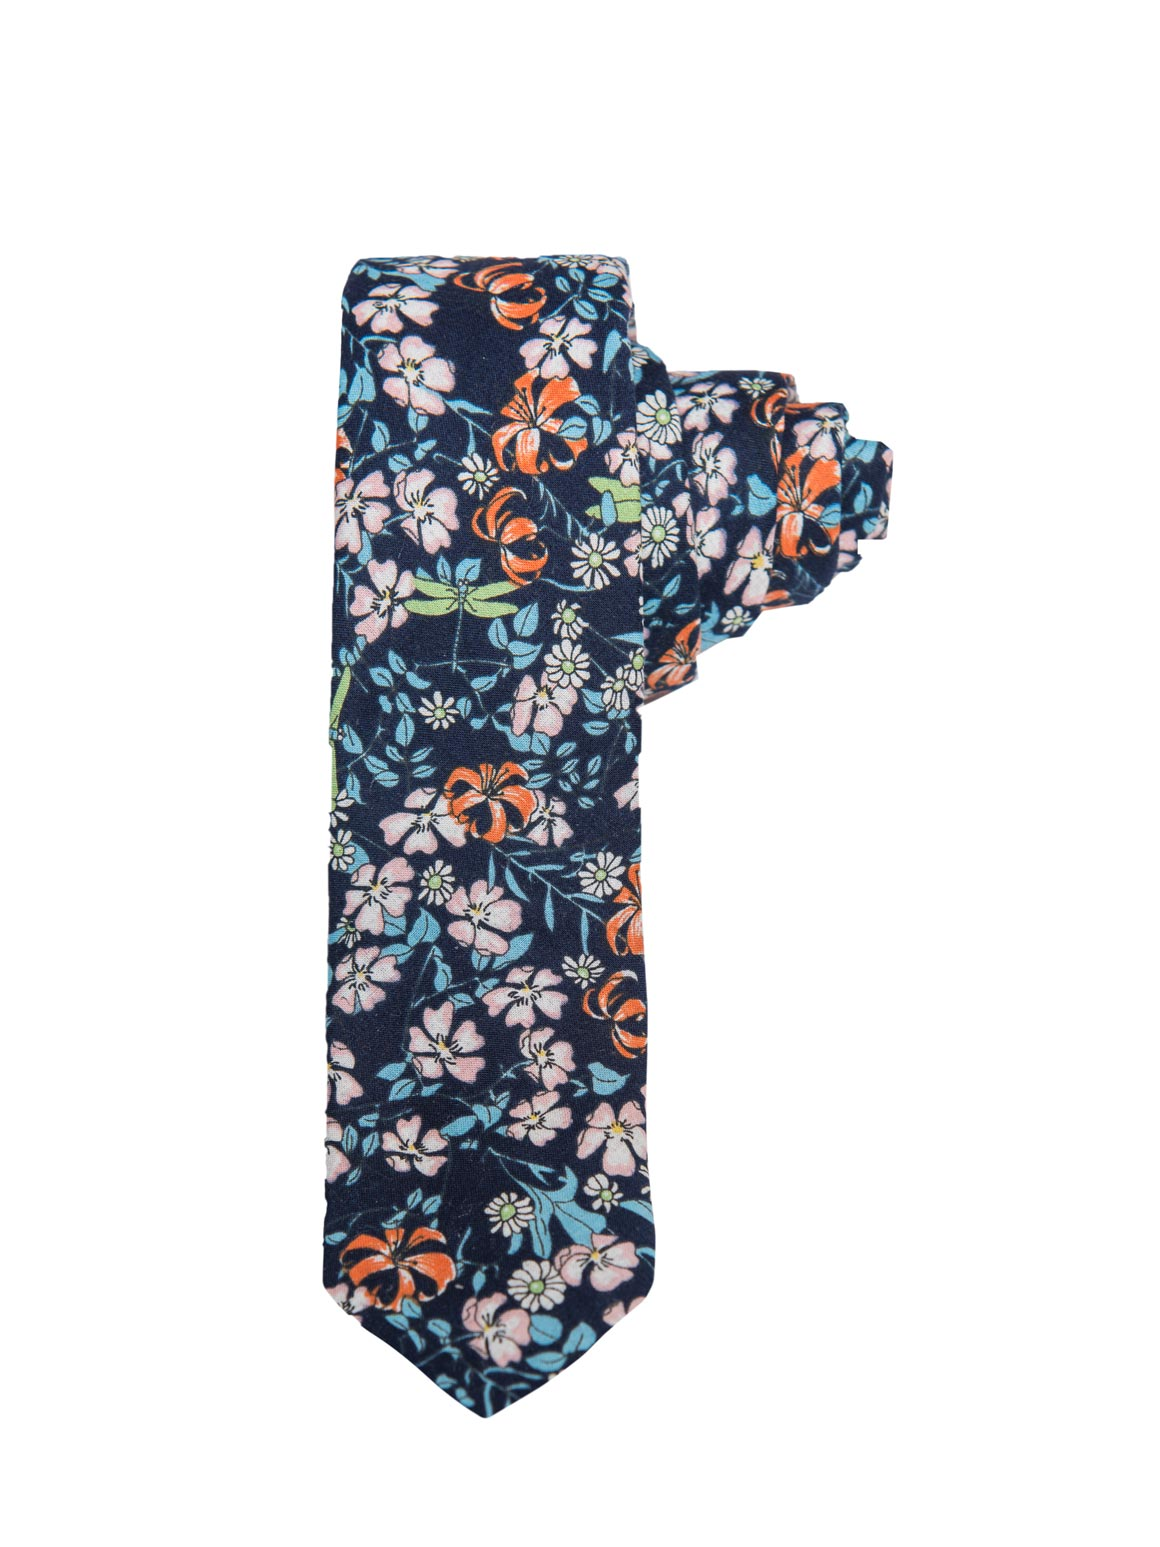 paisley & gray floral dragonfly slim tie is a menswear staple for easy styling 2261t